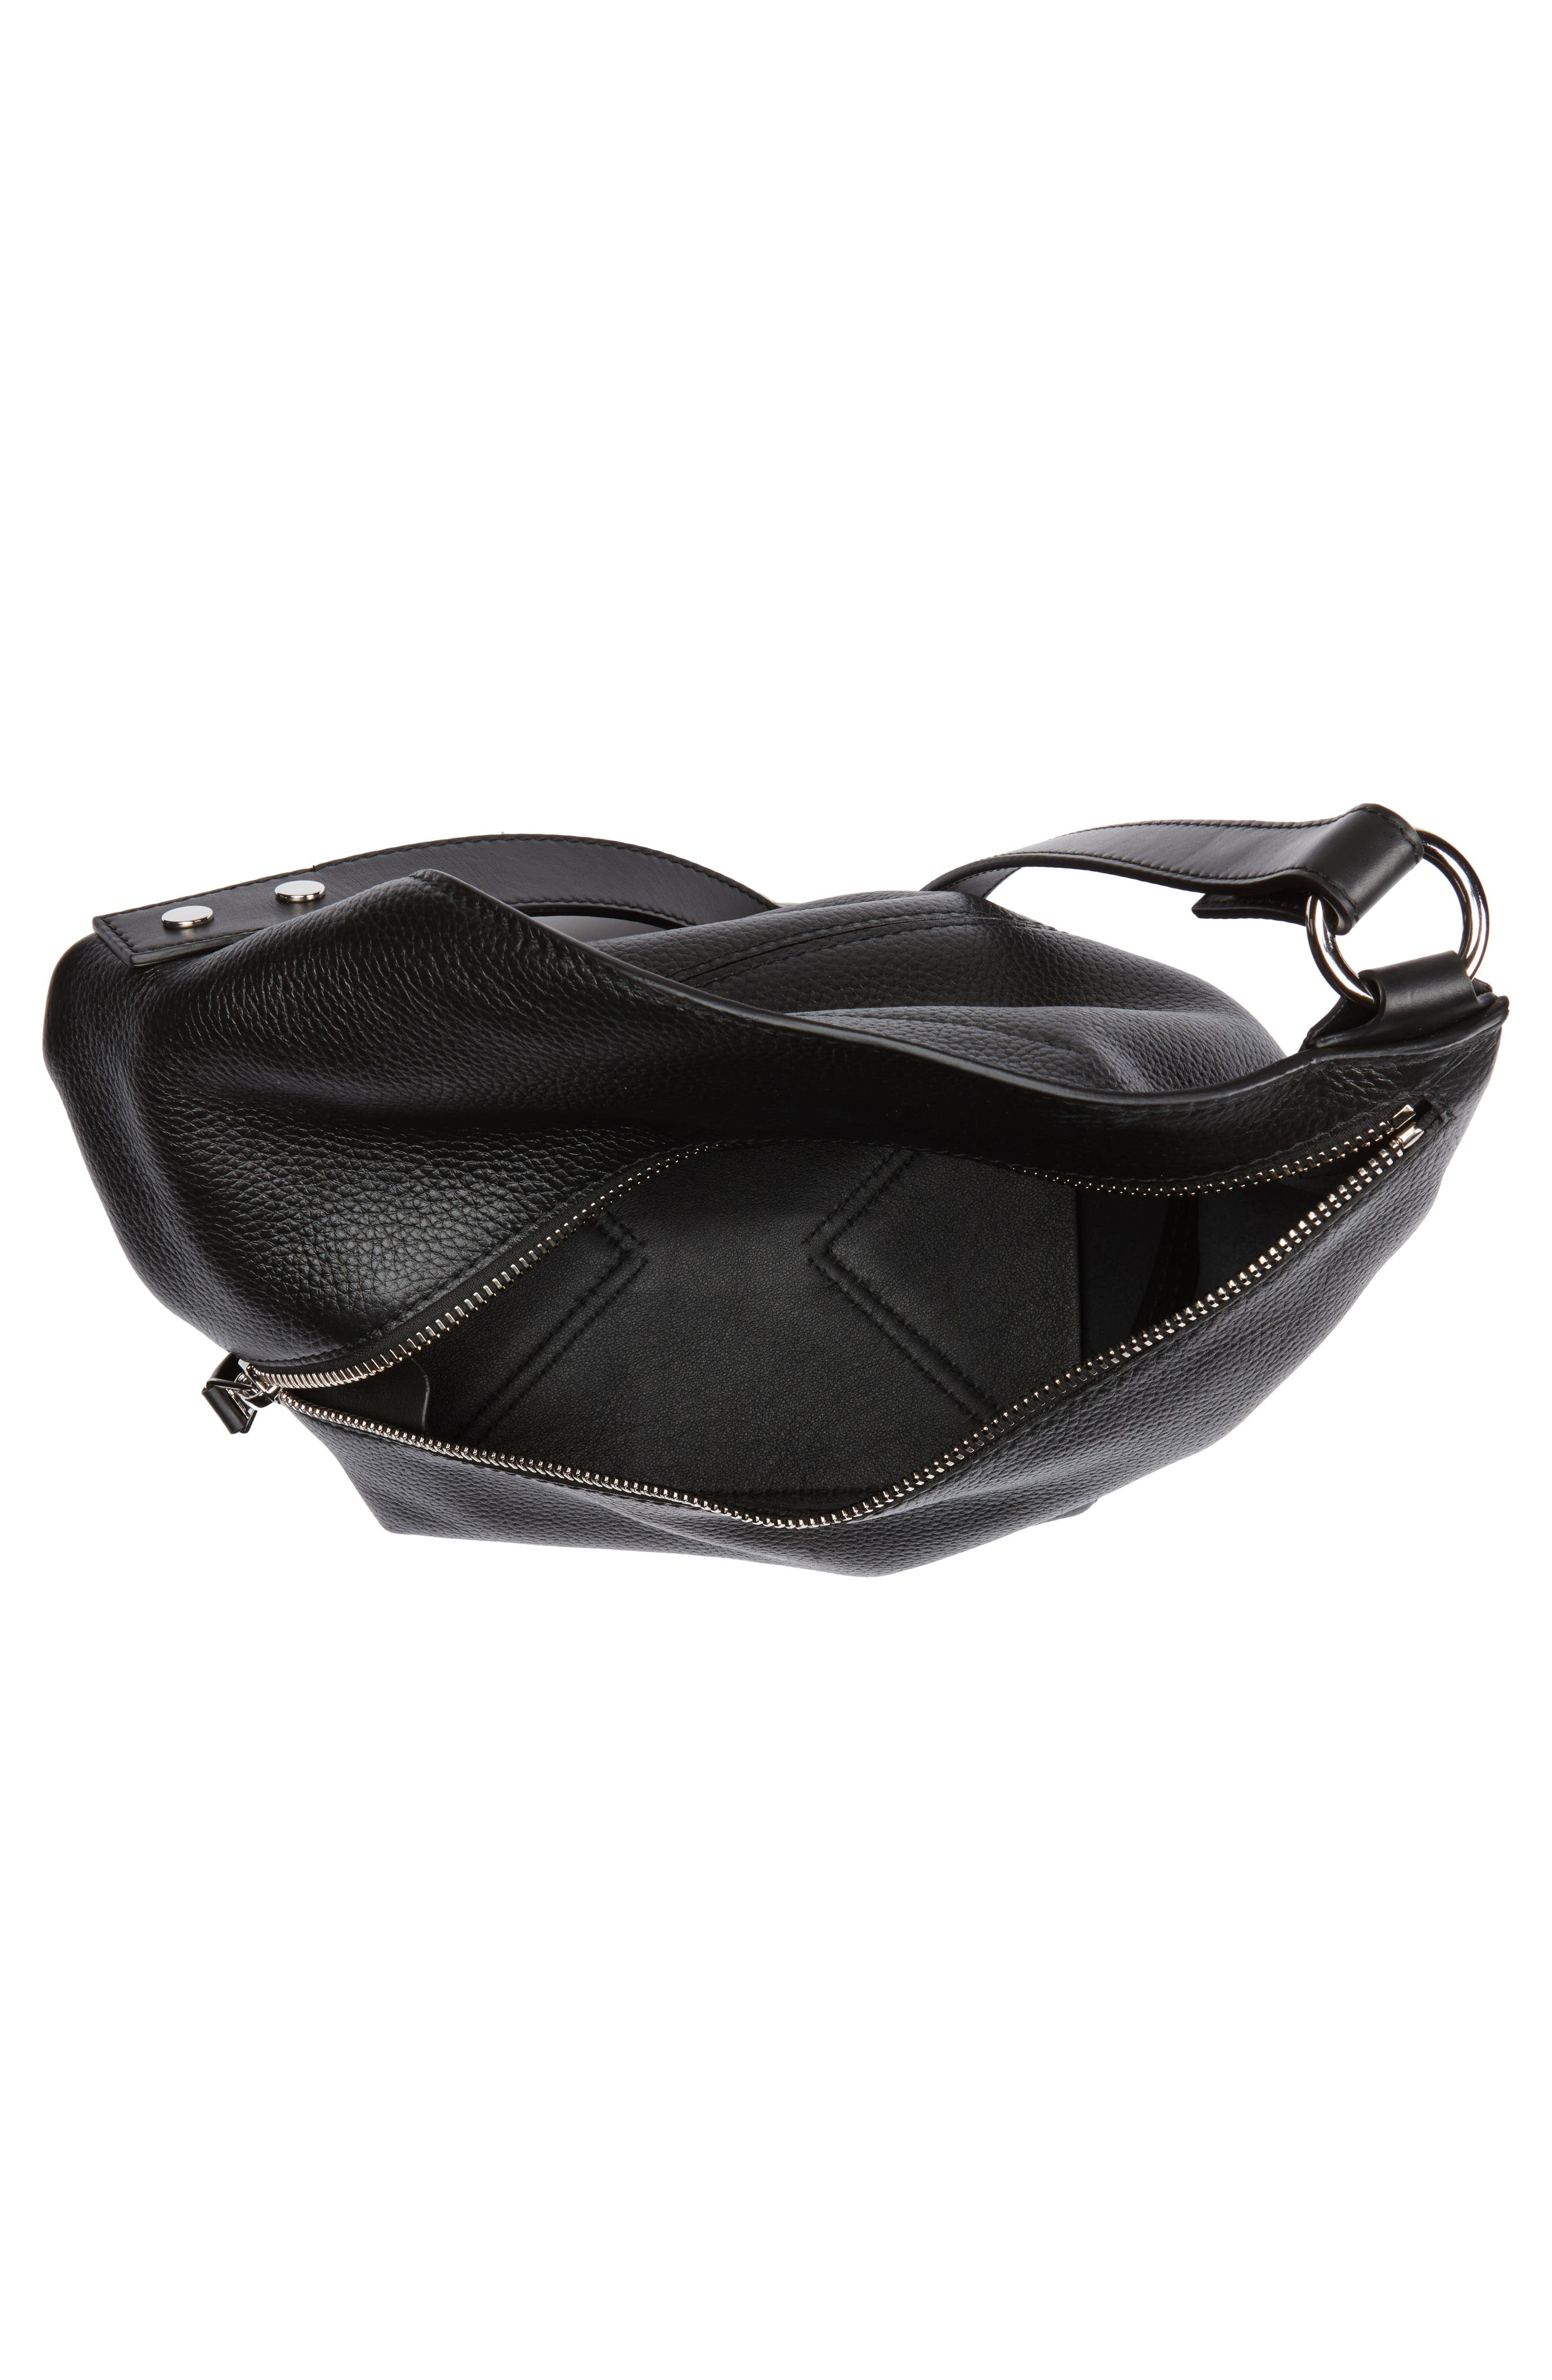 Alternate Image 4  - Proenza Schouler Small Leather Hobo Bag